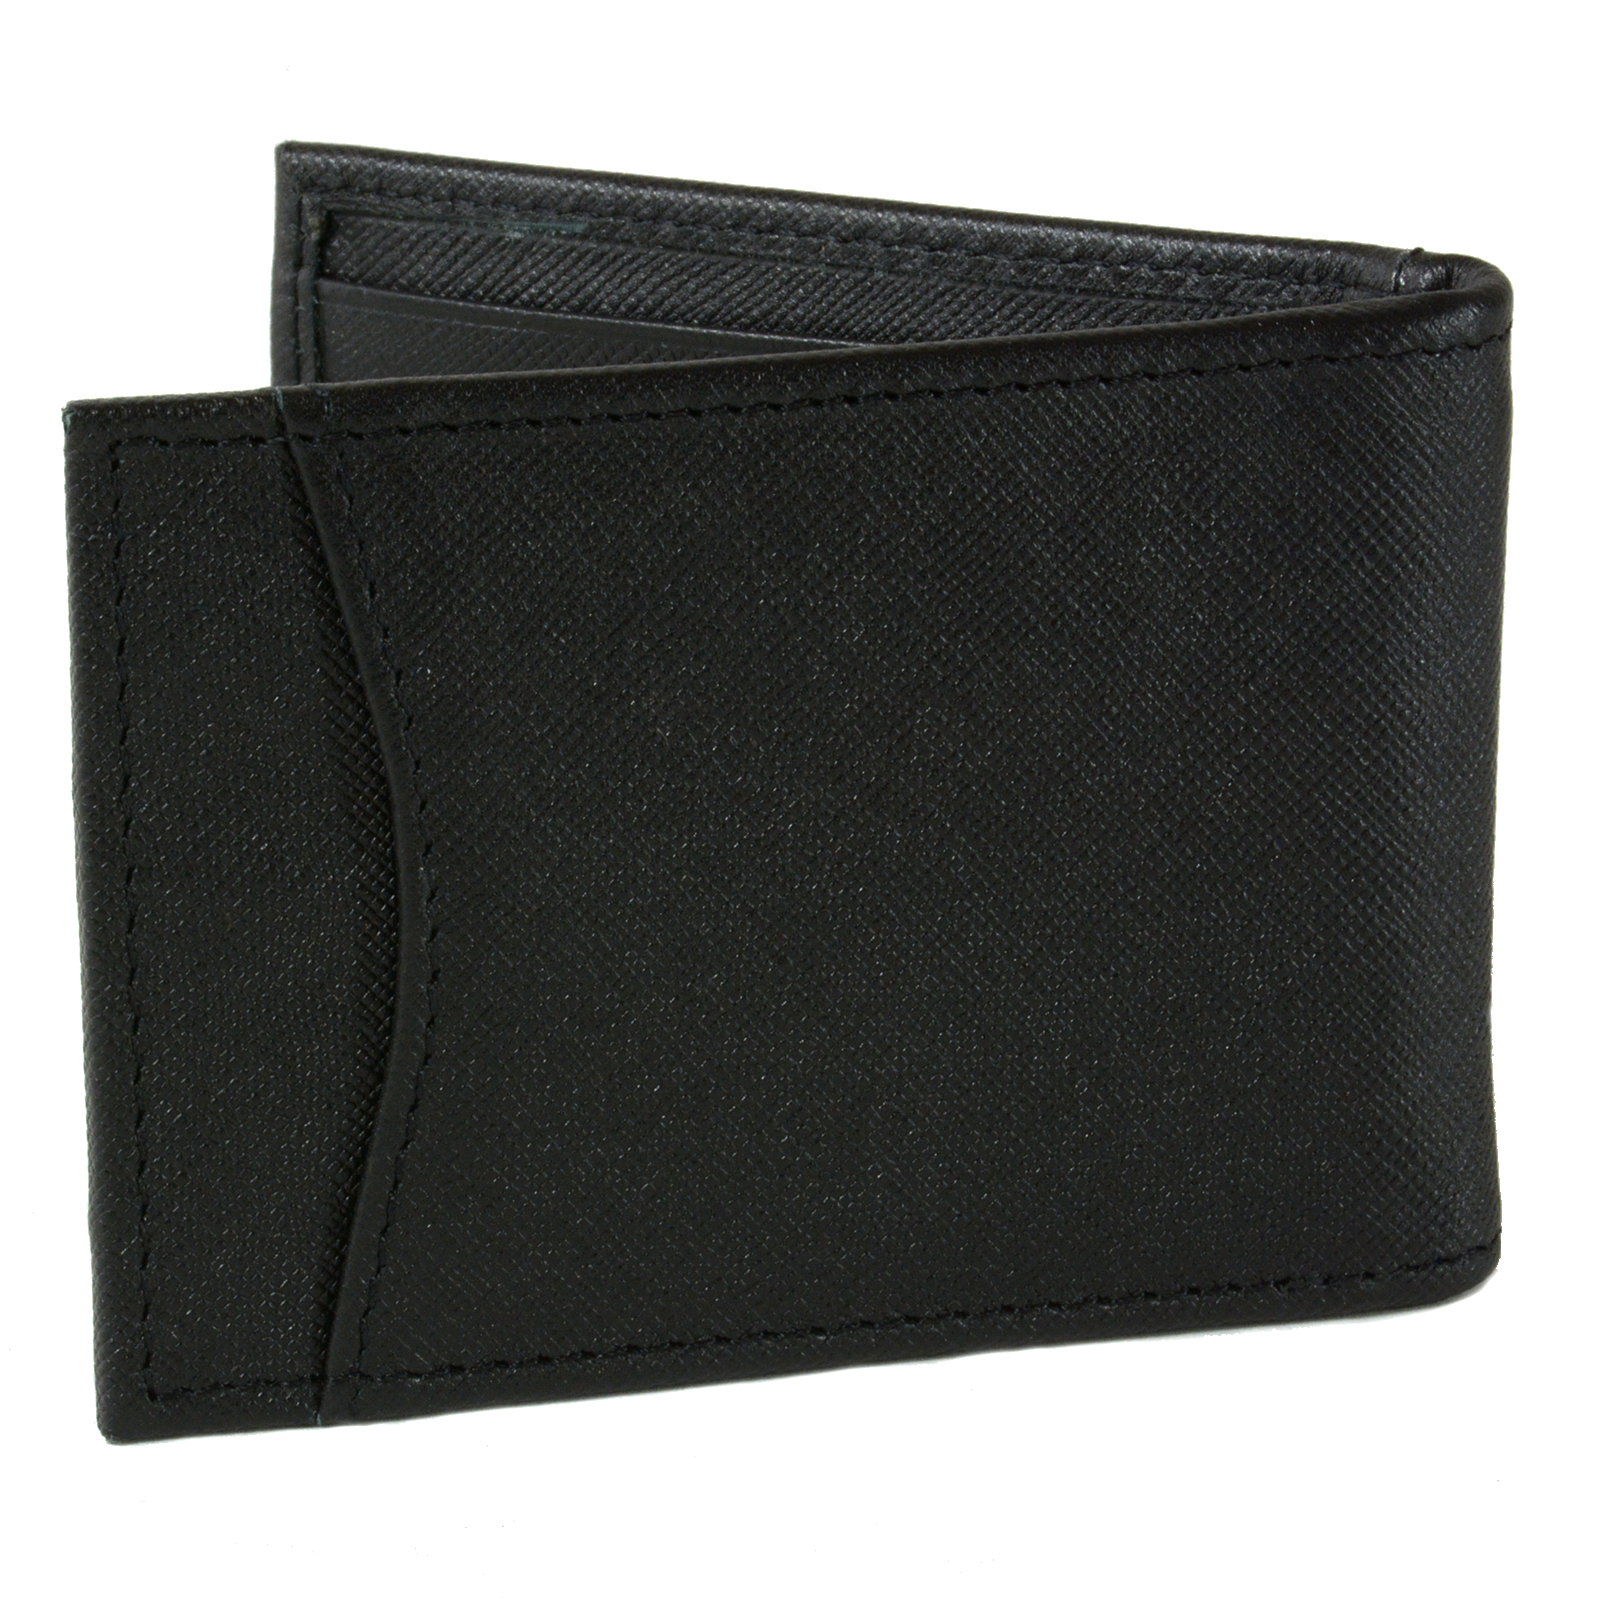 Alpine-Swiss-Mens-Bifold-Money-Clip-Spring-Loaded-Leather-ID-Front-Pocket-Wallet thumbnail 36